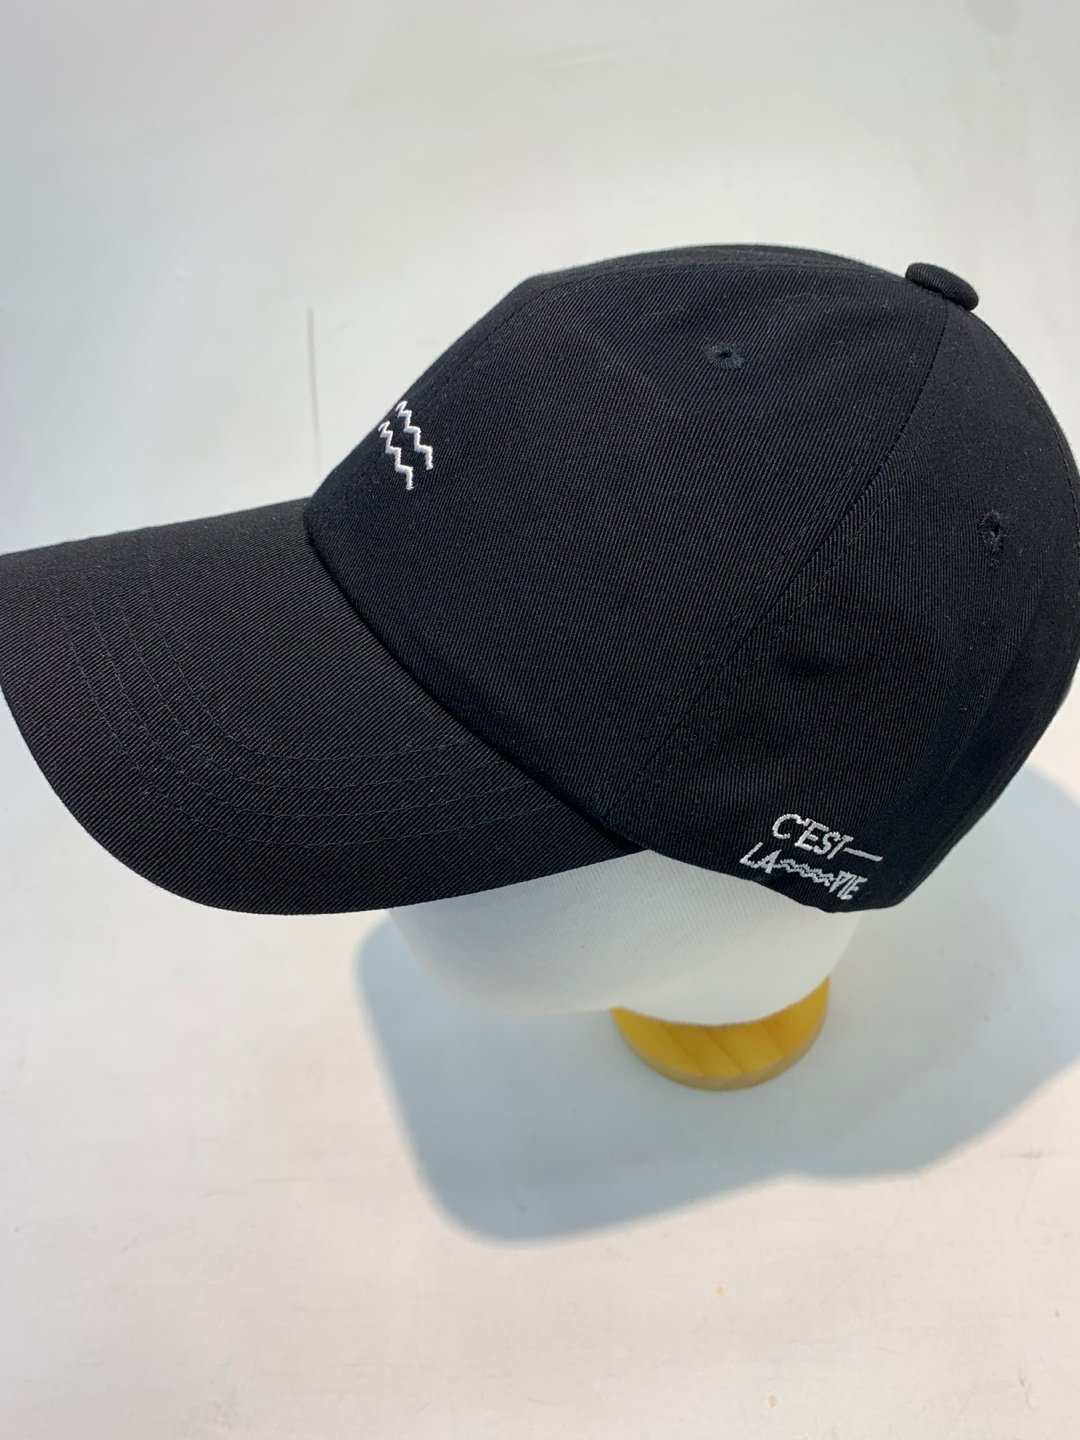 wave ball cap fashion casual hat work out ootd style k pop